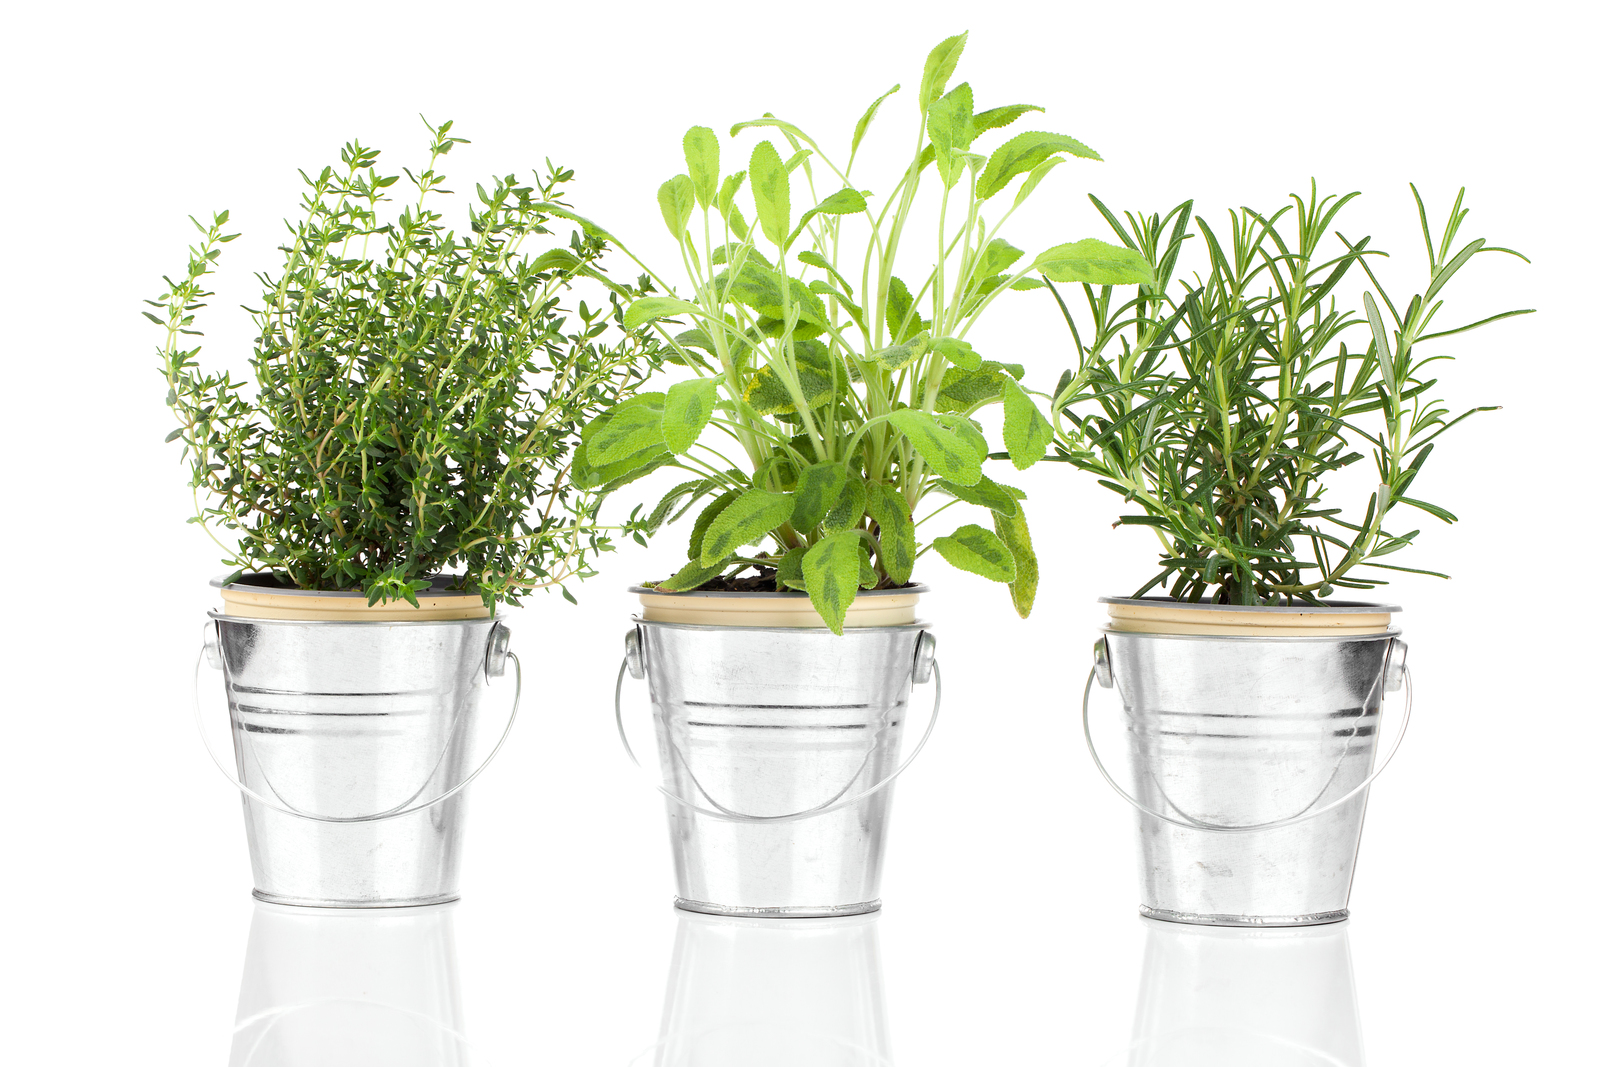 15 Ways To Keep Your Potted Herbs Alive Indoors